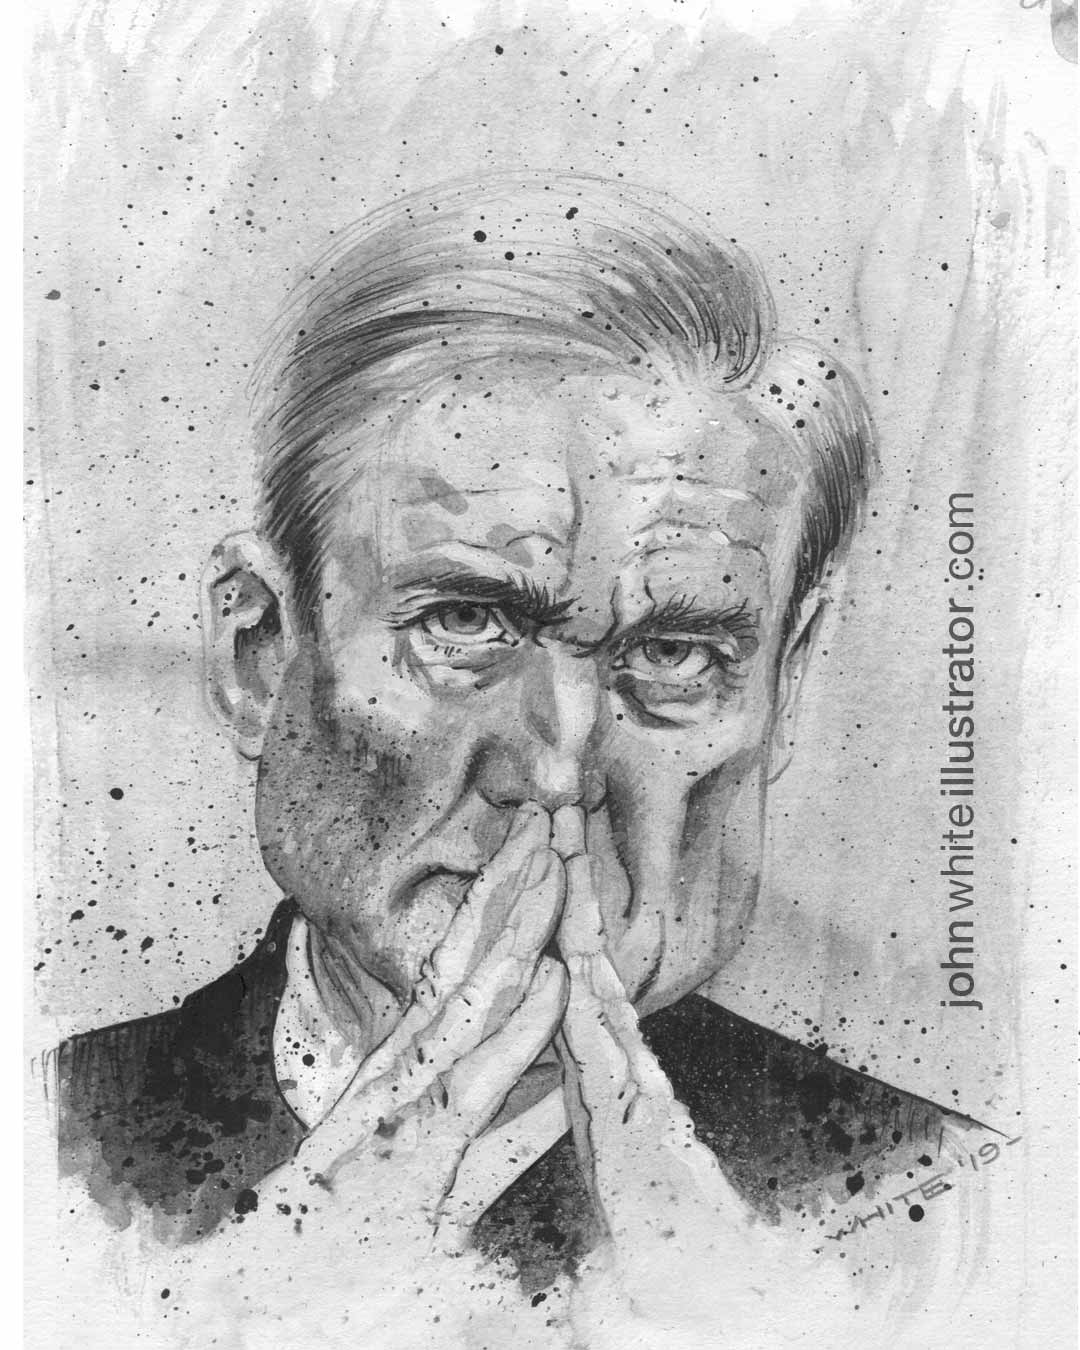 black and white editorial illustration of special council robert mueller